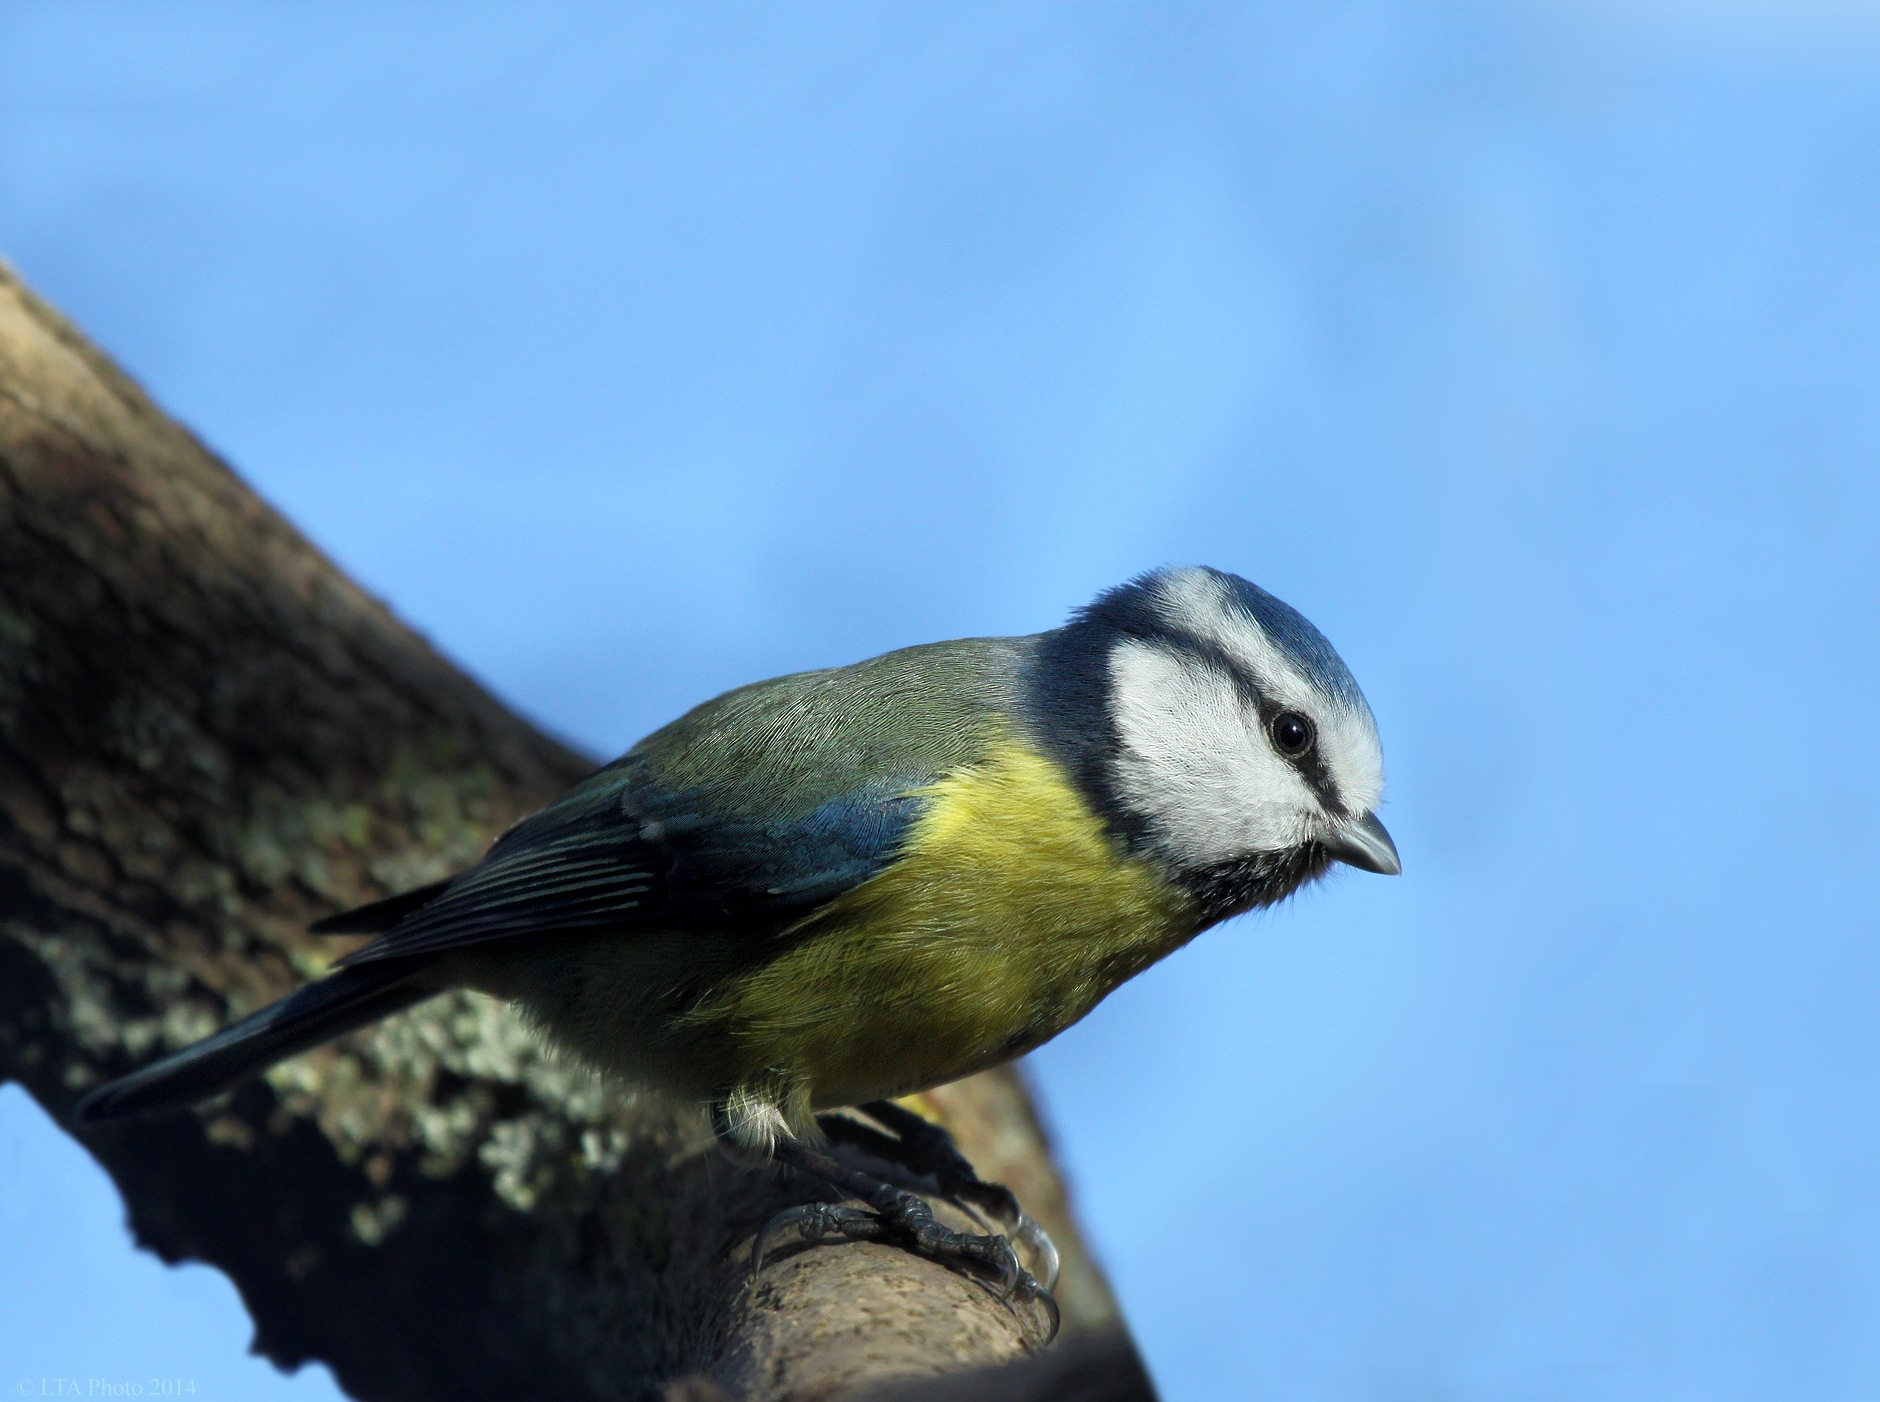 Blue Tit, portrait by Ltaphoto